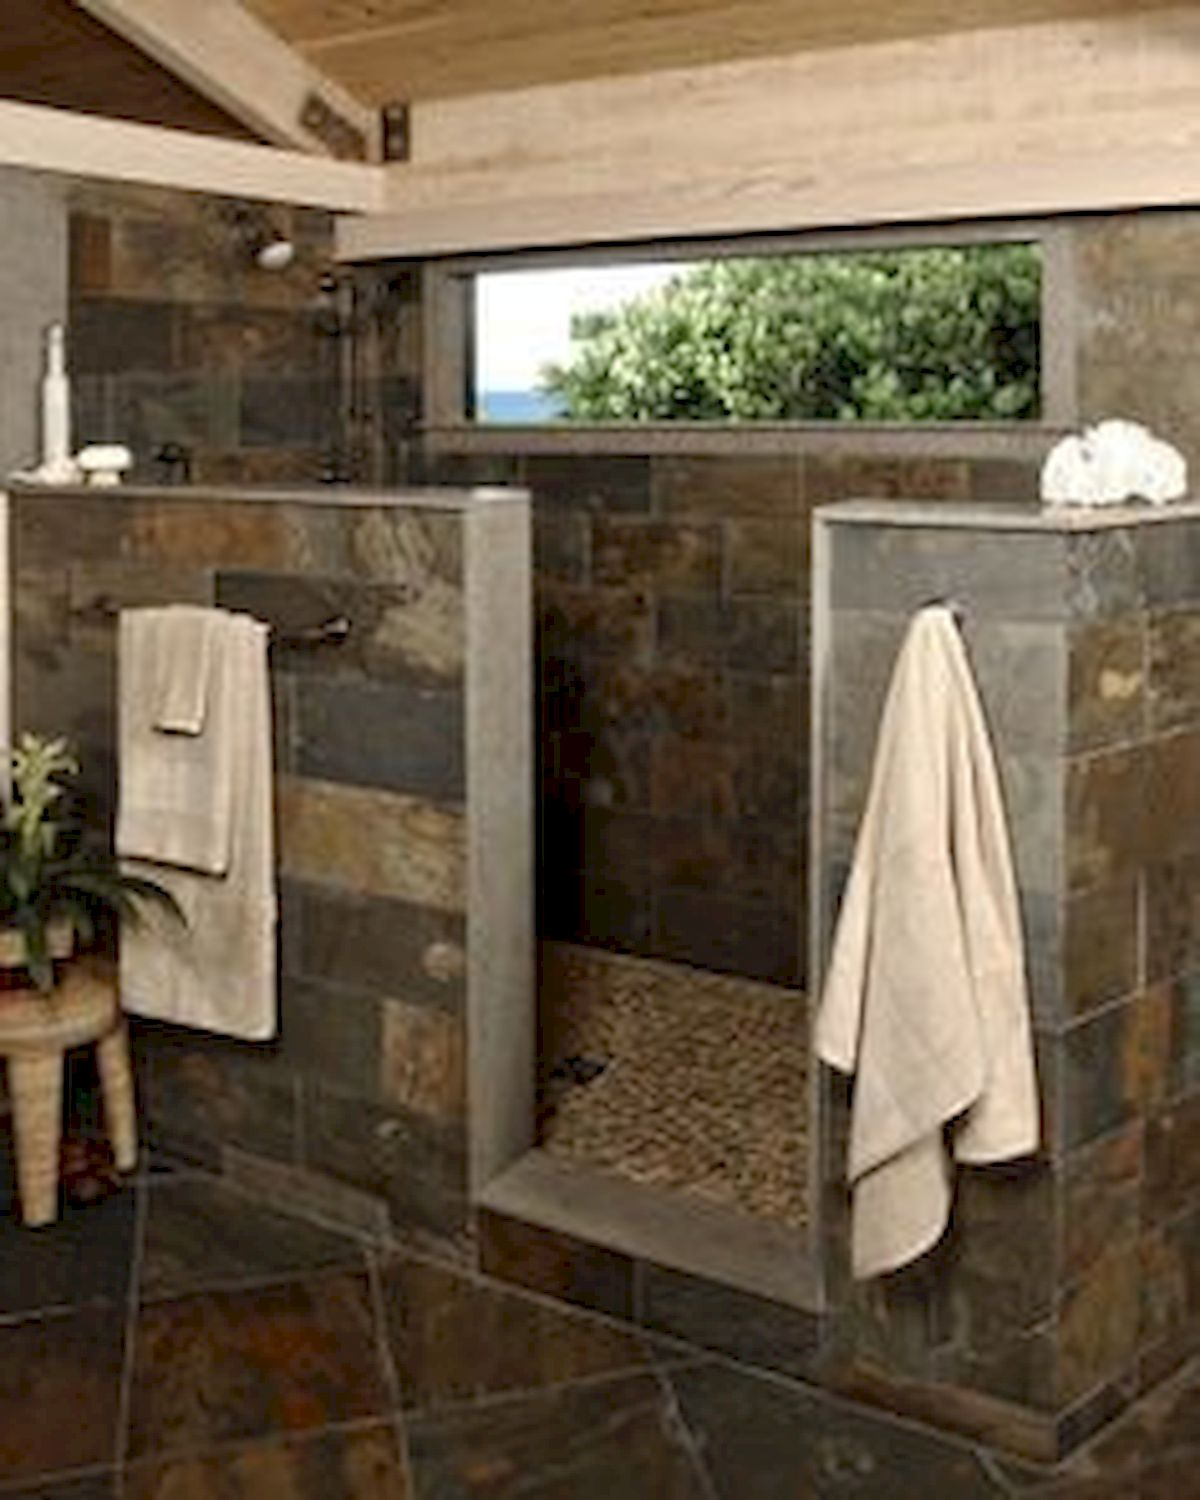 46 Fantastic Walk In Shower No Door for Bathroom Ideas 28